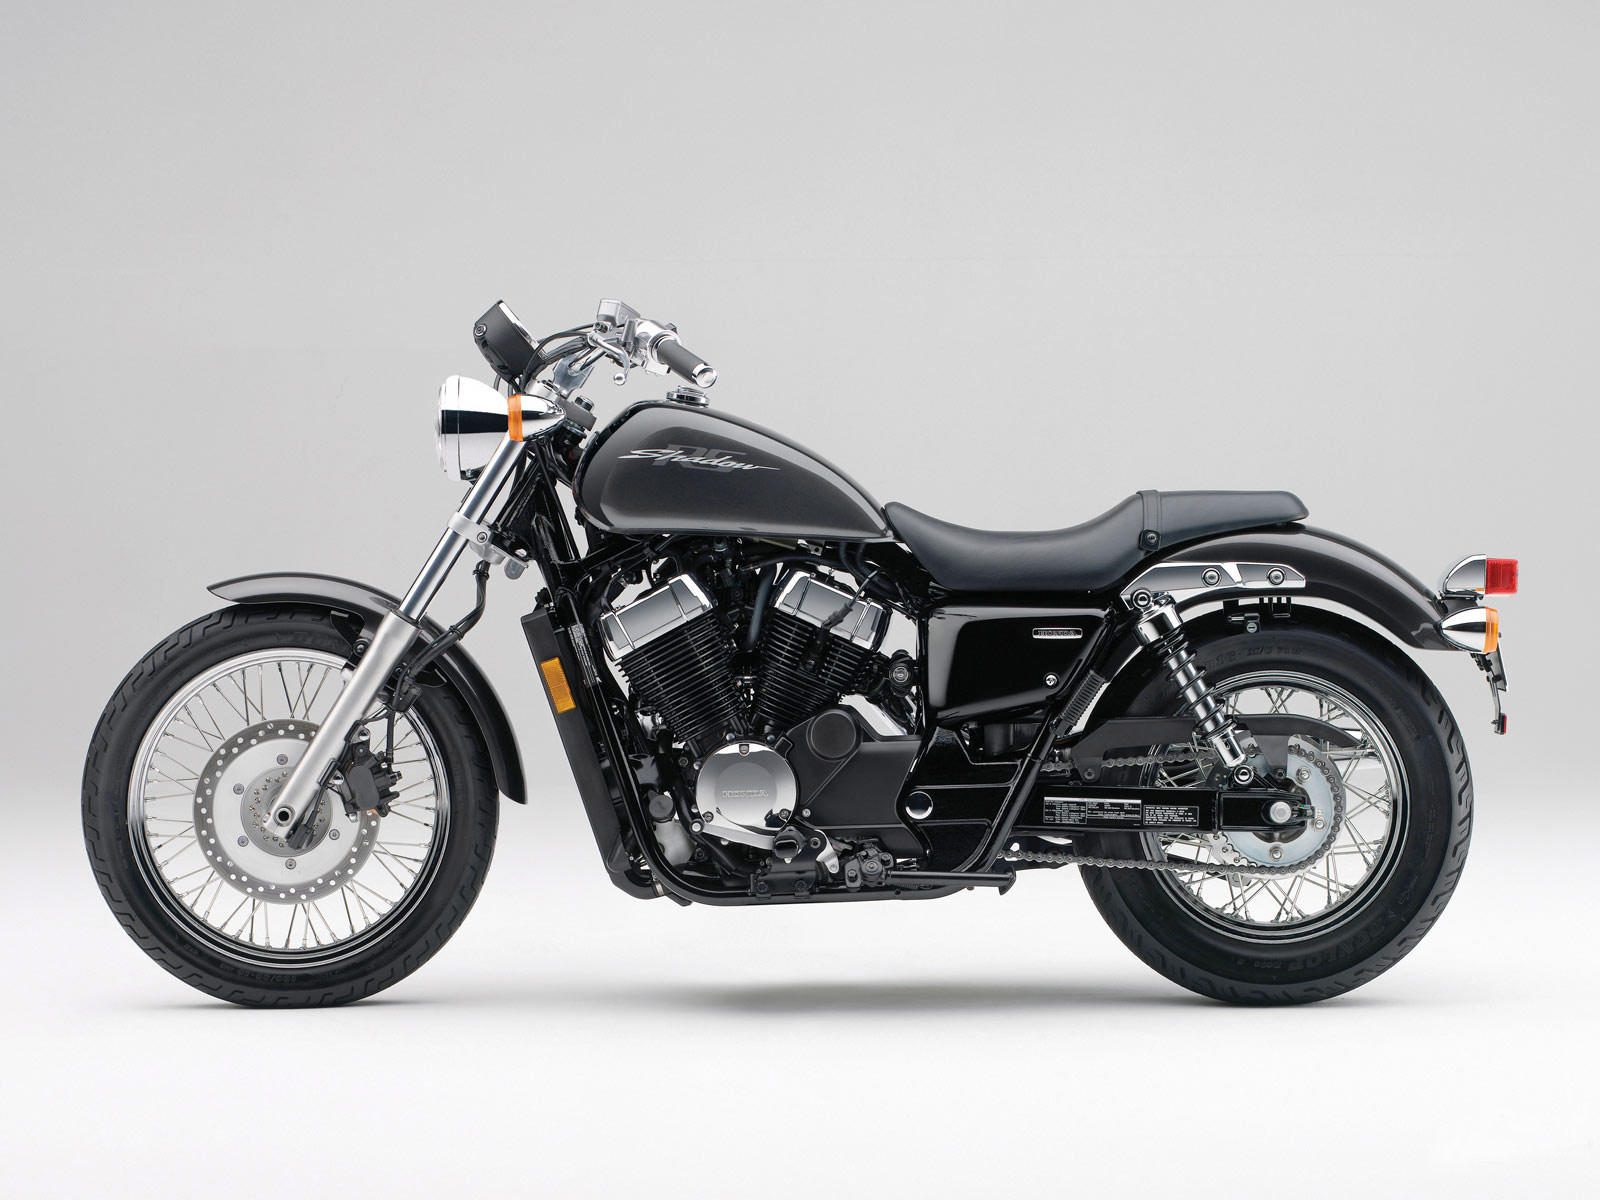 Honda Motorcycle Vtc Shadow